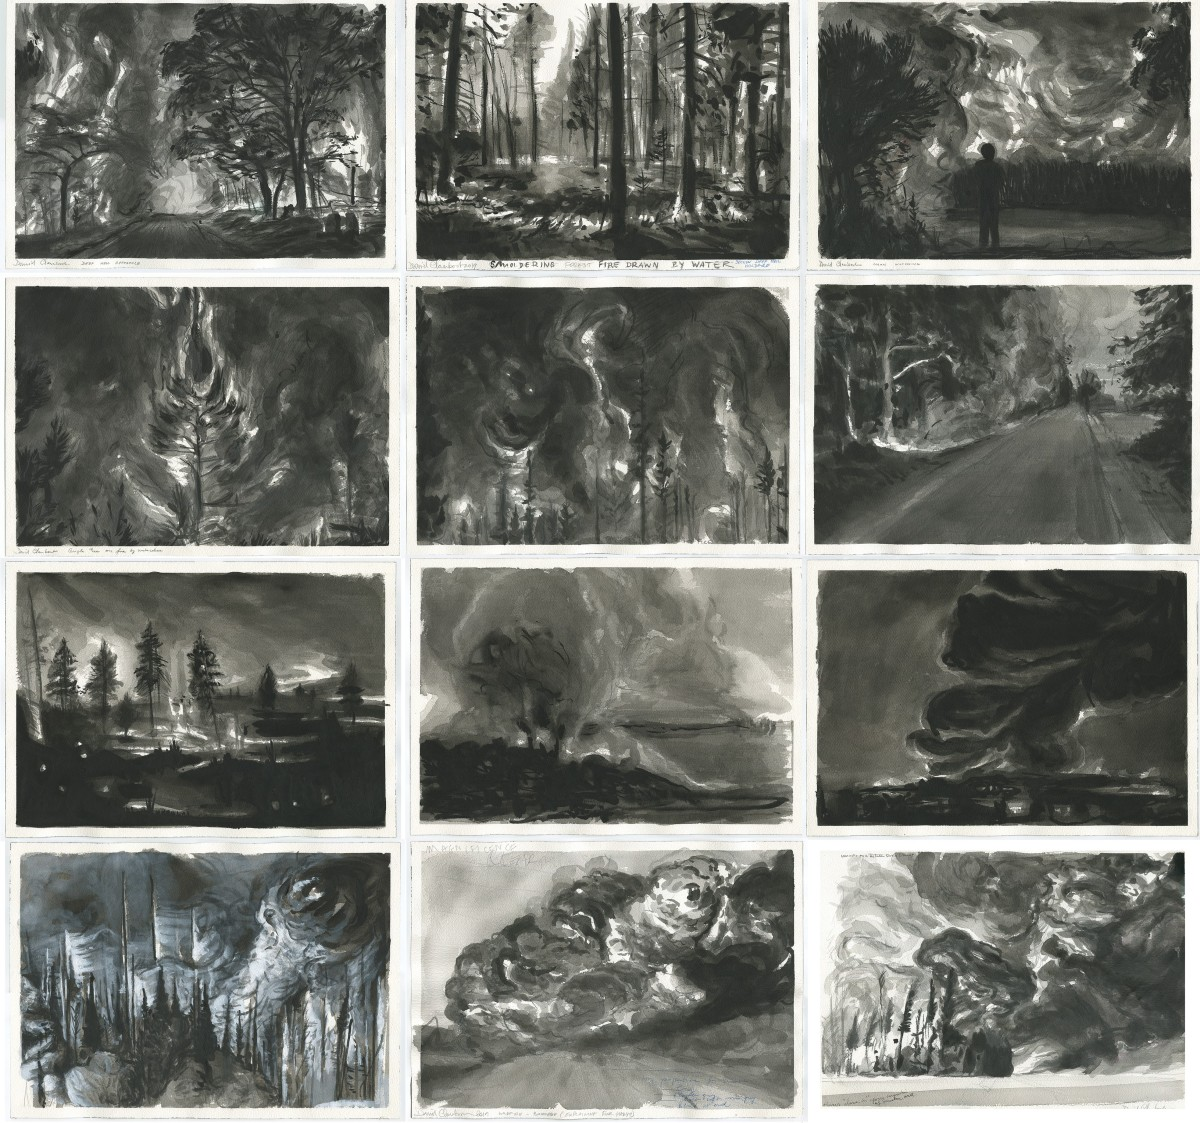 David Claerbout, Wildfire drawings, 2020, China ink and pencil on paper, mounted on cardboard, dimensions variable. Photo © Studio David Claerbout